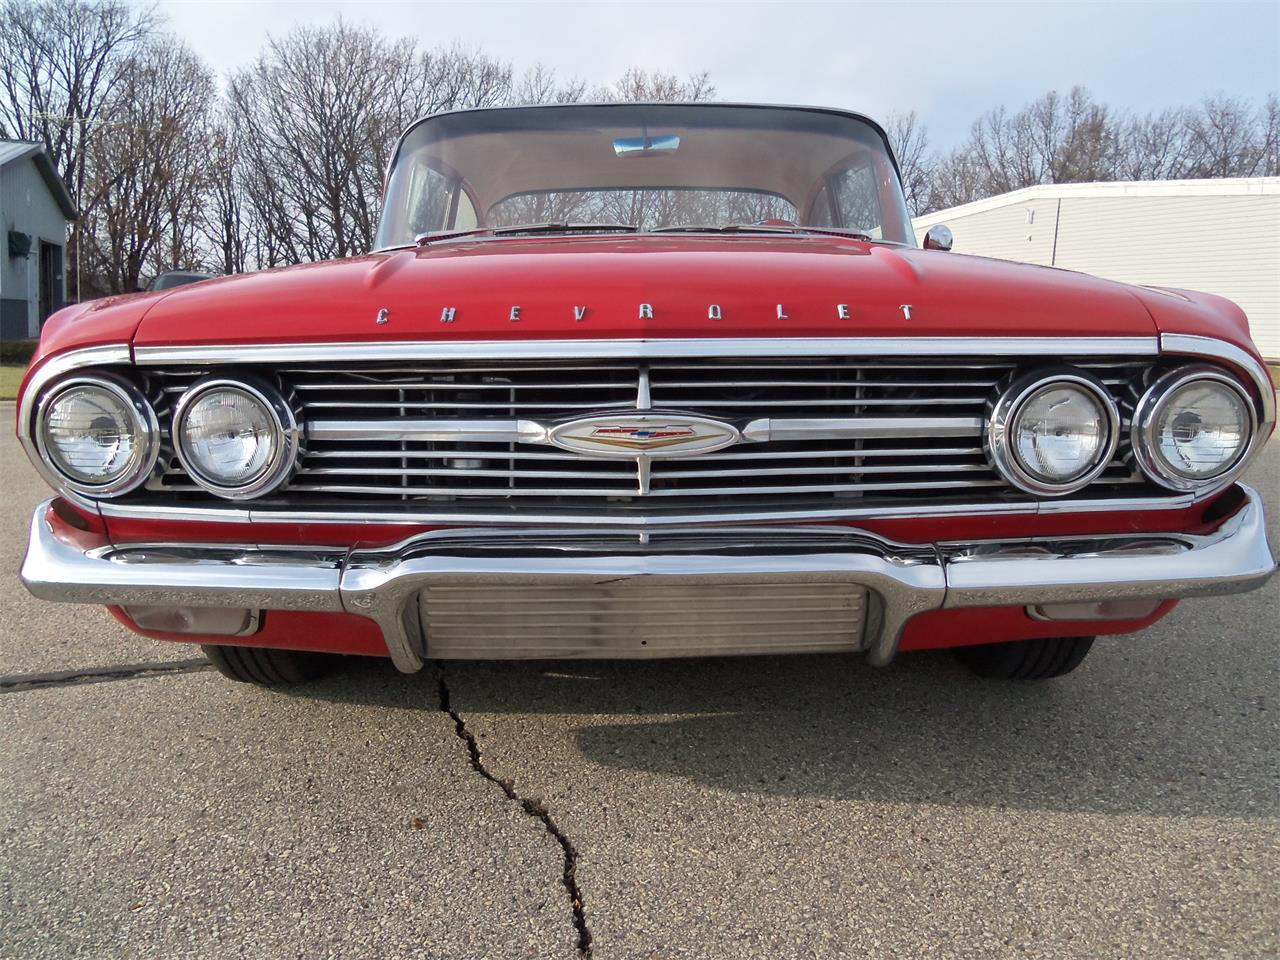 Large Picture of Classic 1960 Chevrolet Biscayne Offered by Top Notch Pre-Owned Vehicles - MJG1